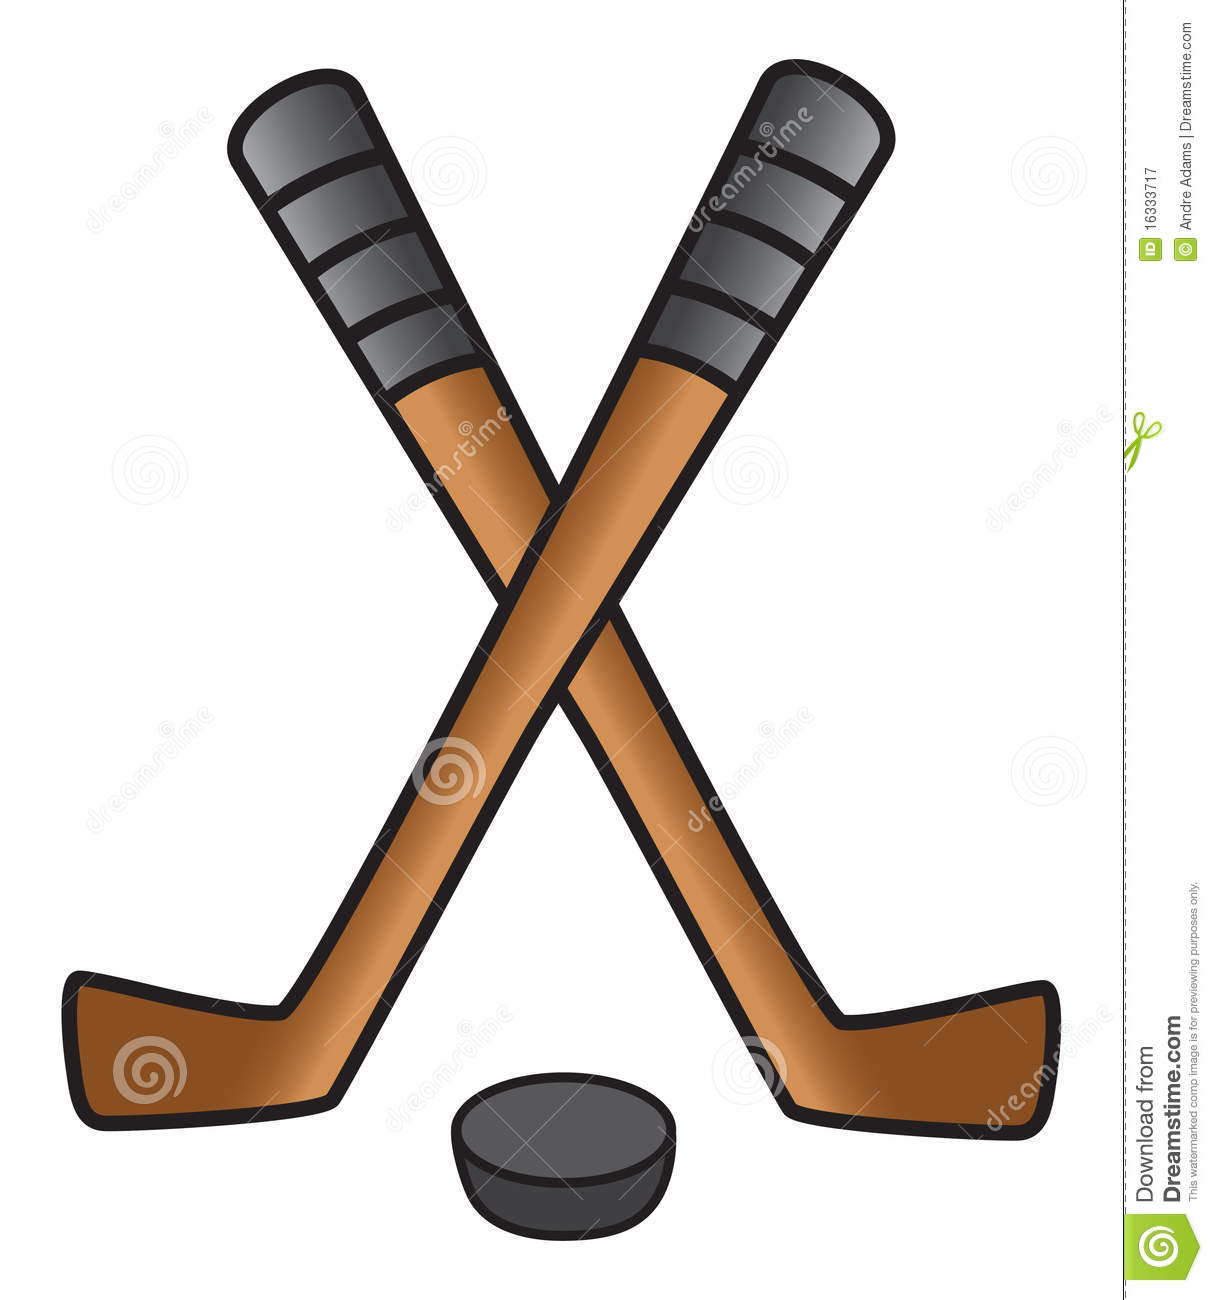 hight resolution of 1213x1300 hockey puck and stick clipart